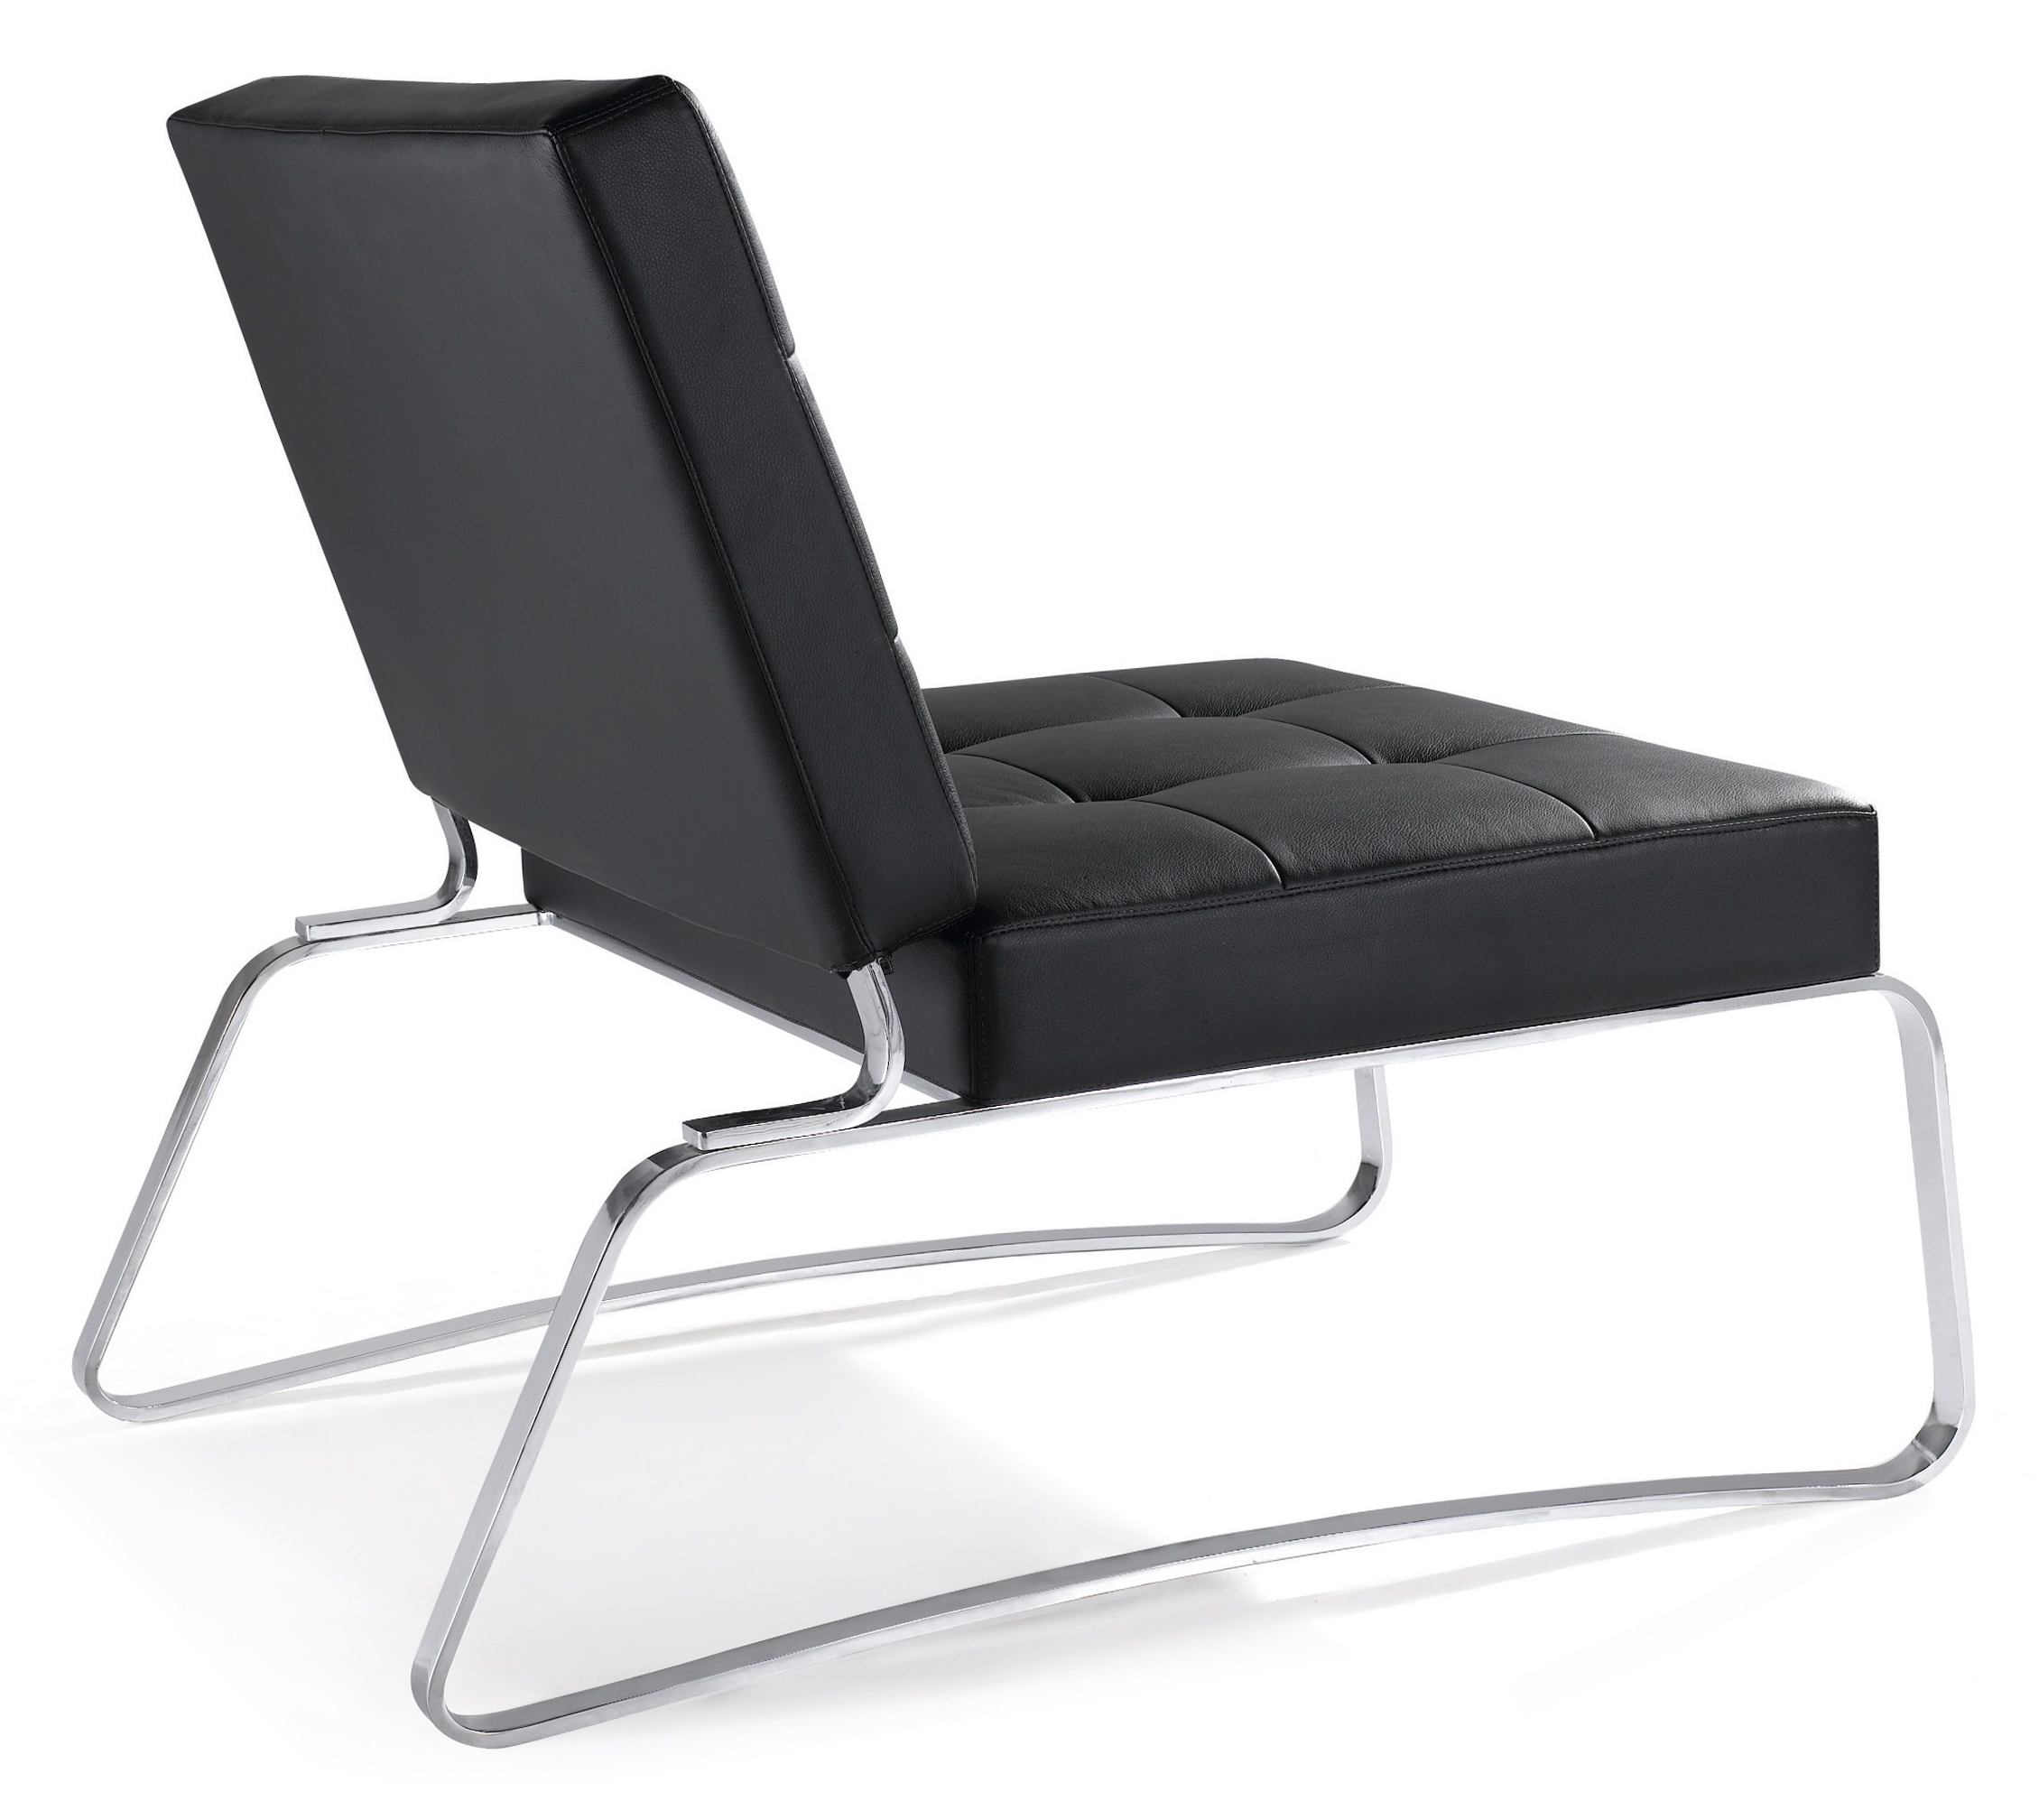 hermes-lounge-chair-in-black.jpg